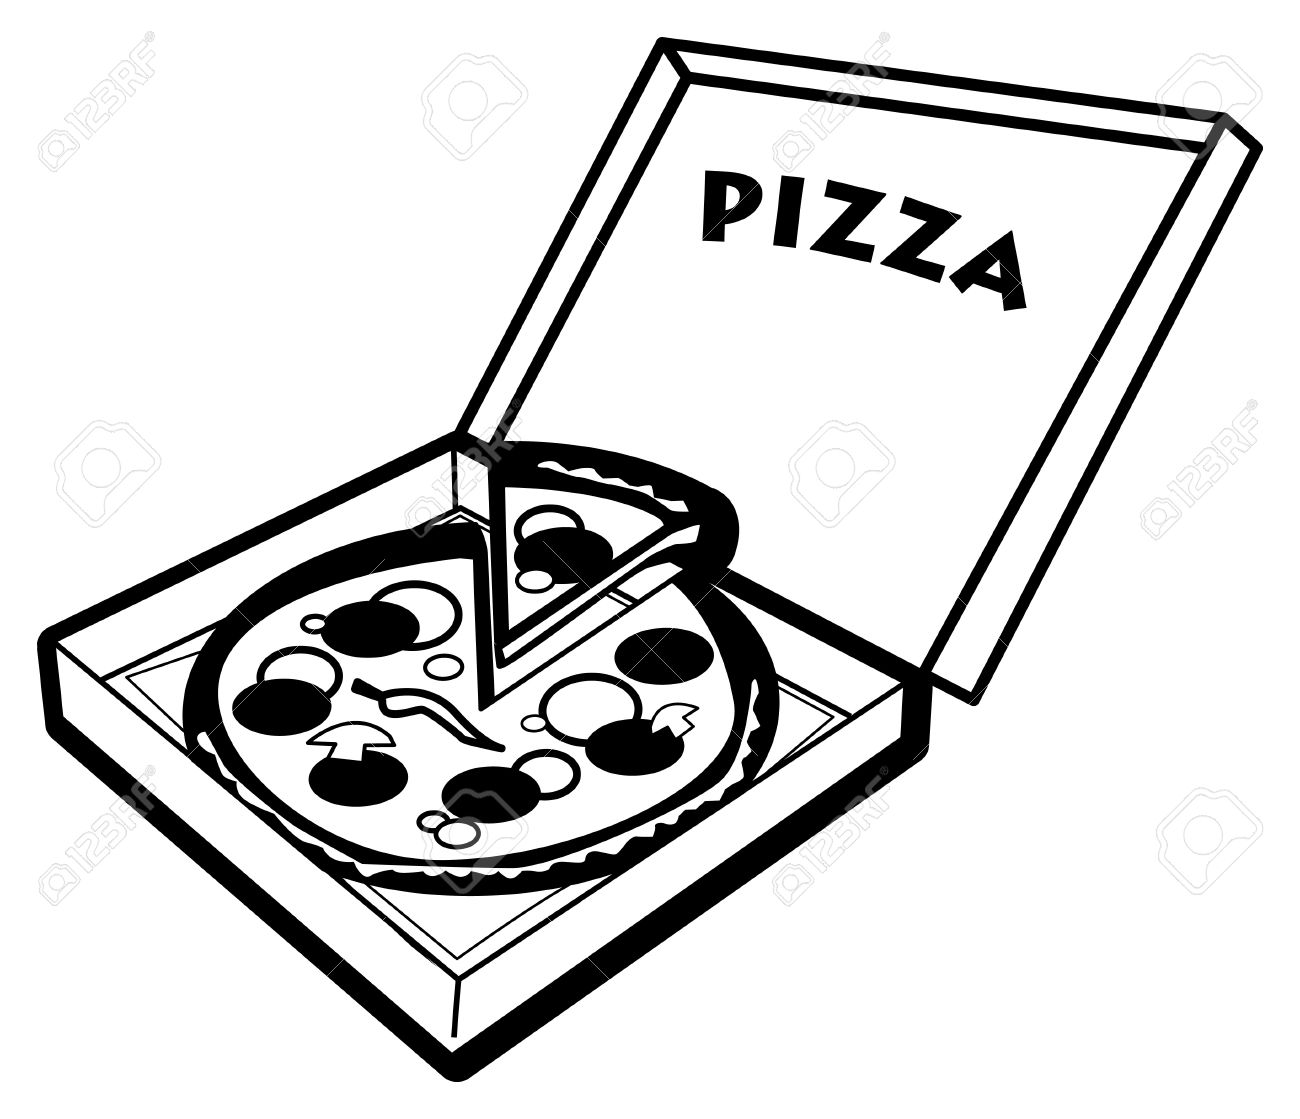 1300x1119 Pizza Clipart, Suggestions For Pizza Clipart, Download Pizza Clipart